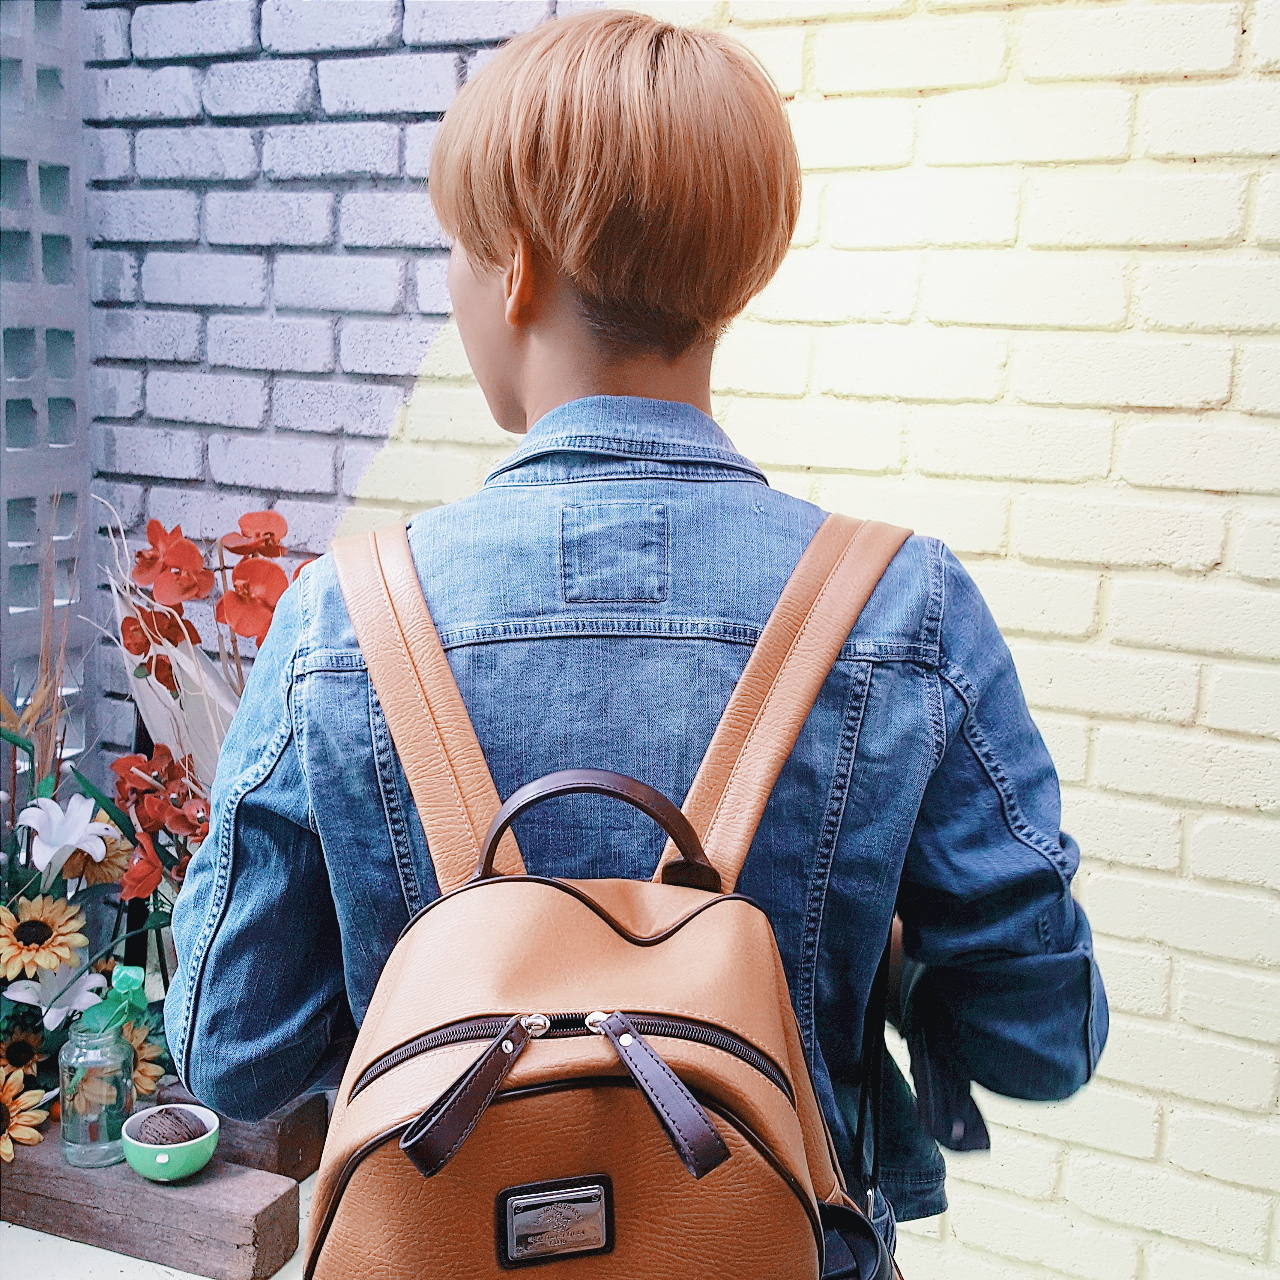 77b32ada32 I caved into the trend and got myself a black backpack from Lazada. As with  a lot of popular items here in Asia, fake Anello bags soon came out.